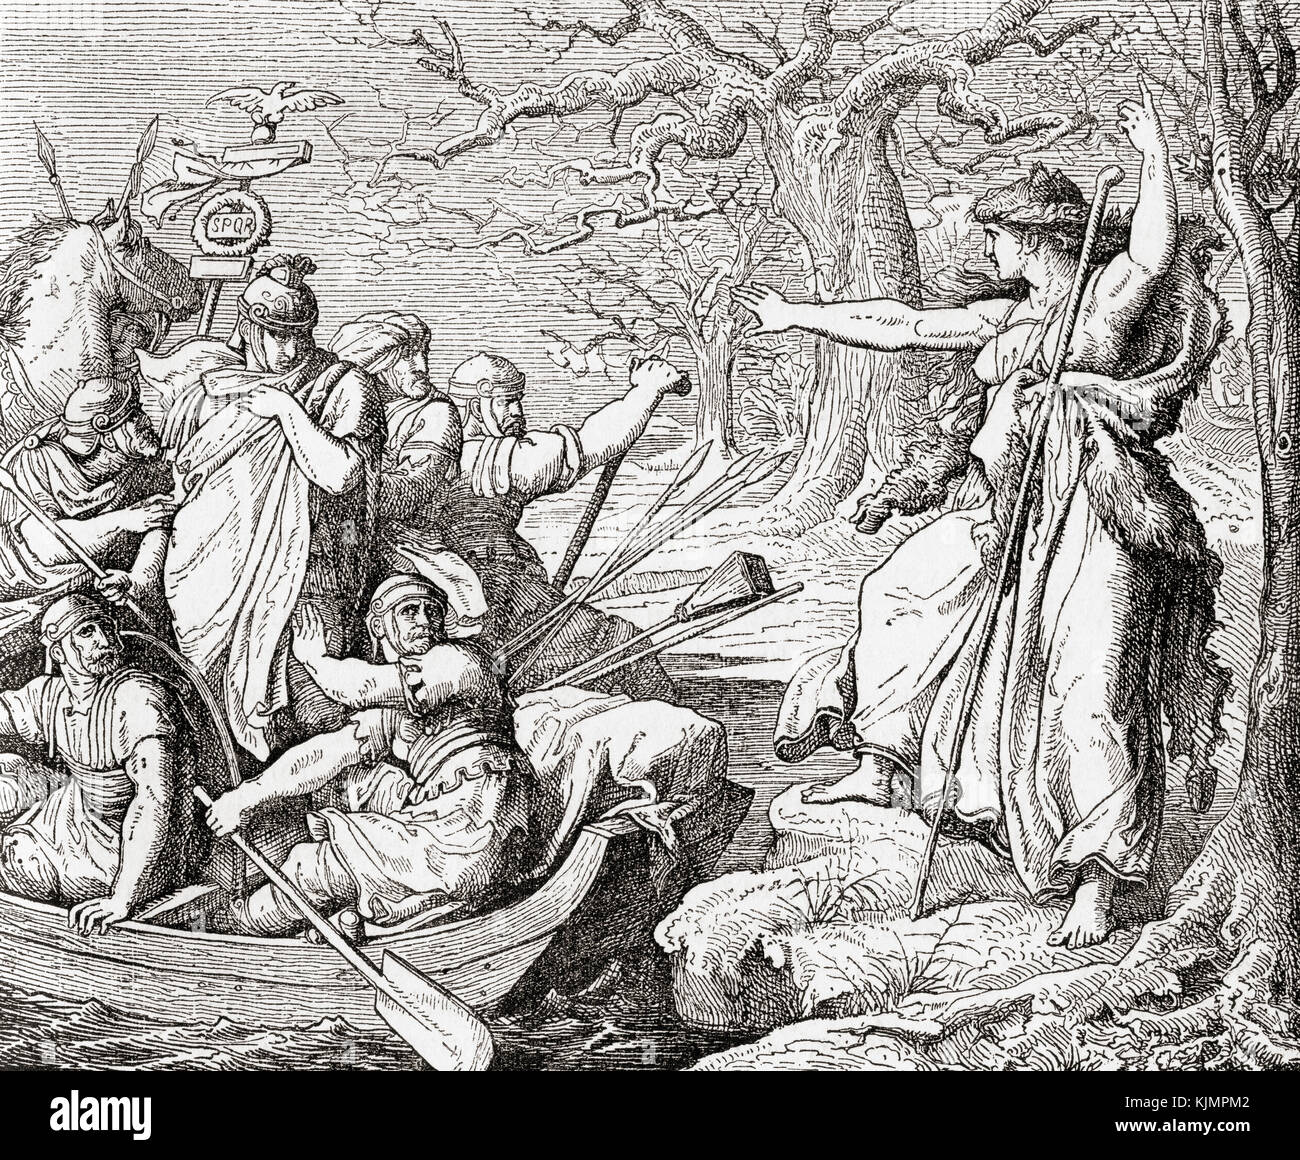 Veleda, a priestess and prophet of the Germanic tribe of the Bructeri swearing vengeance on the Roman invaders, - Stock Image